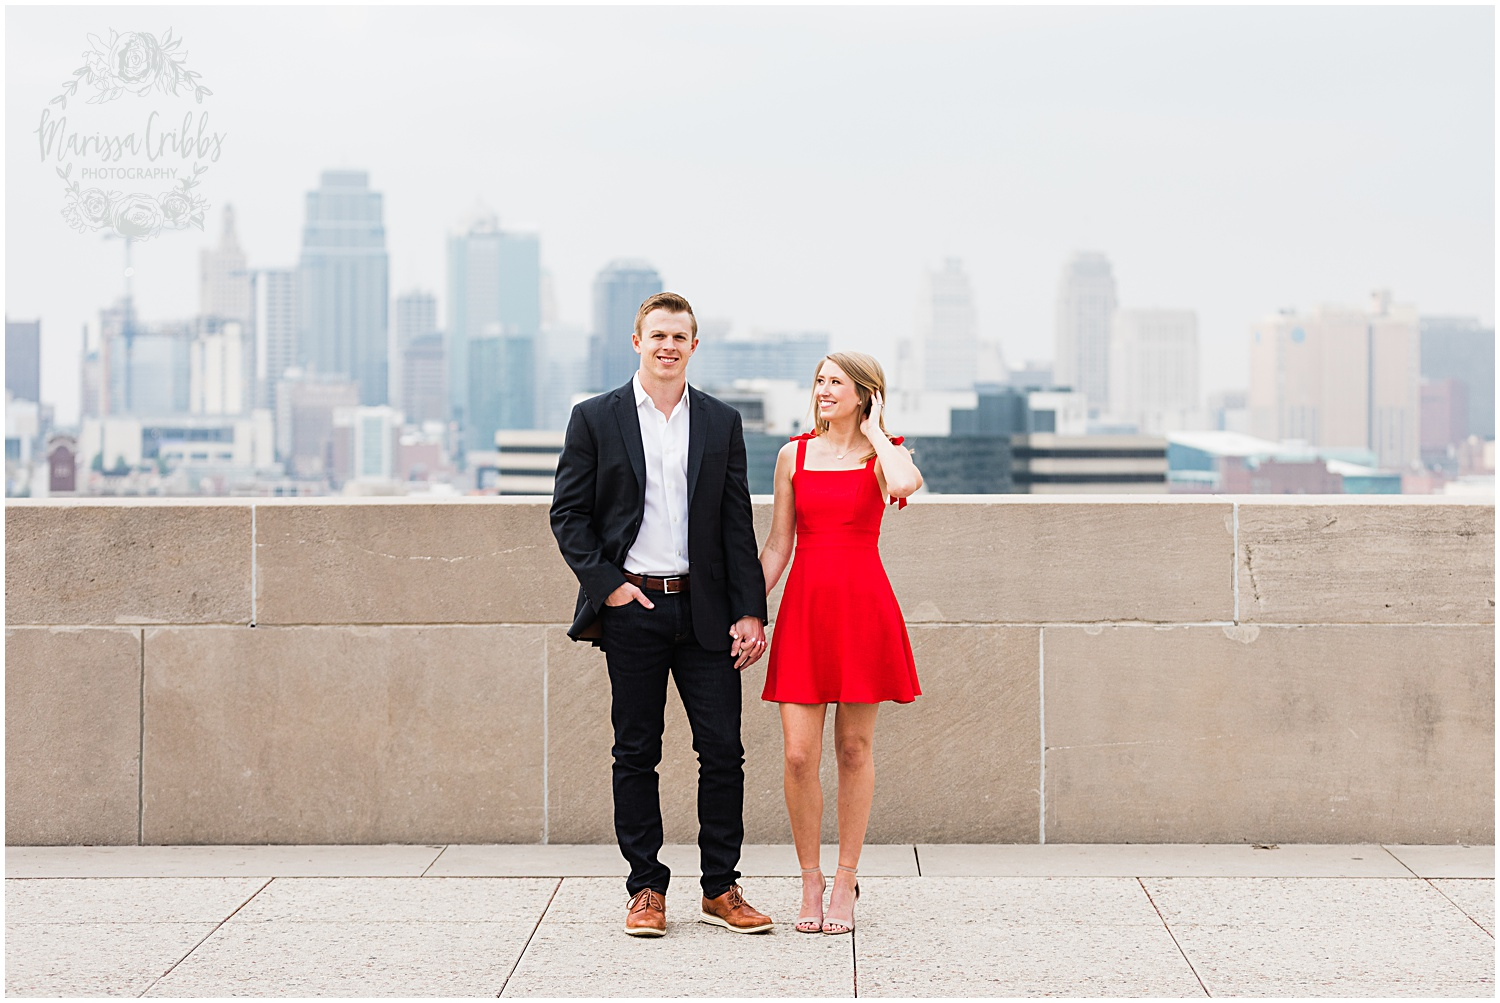 MADDY & KYLE ENGAGEMENT | MARISSA CRIBBS PHOTOGRAPHY_7622.jpg